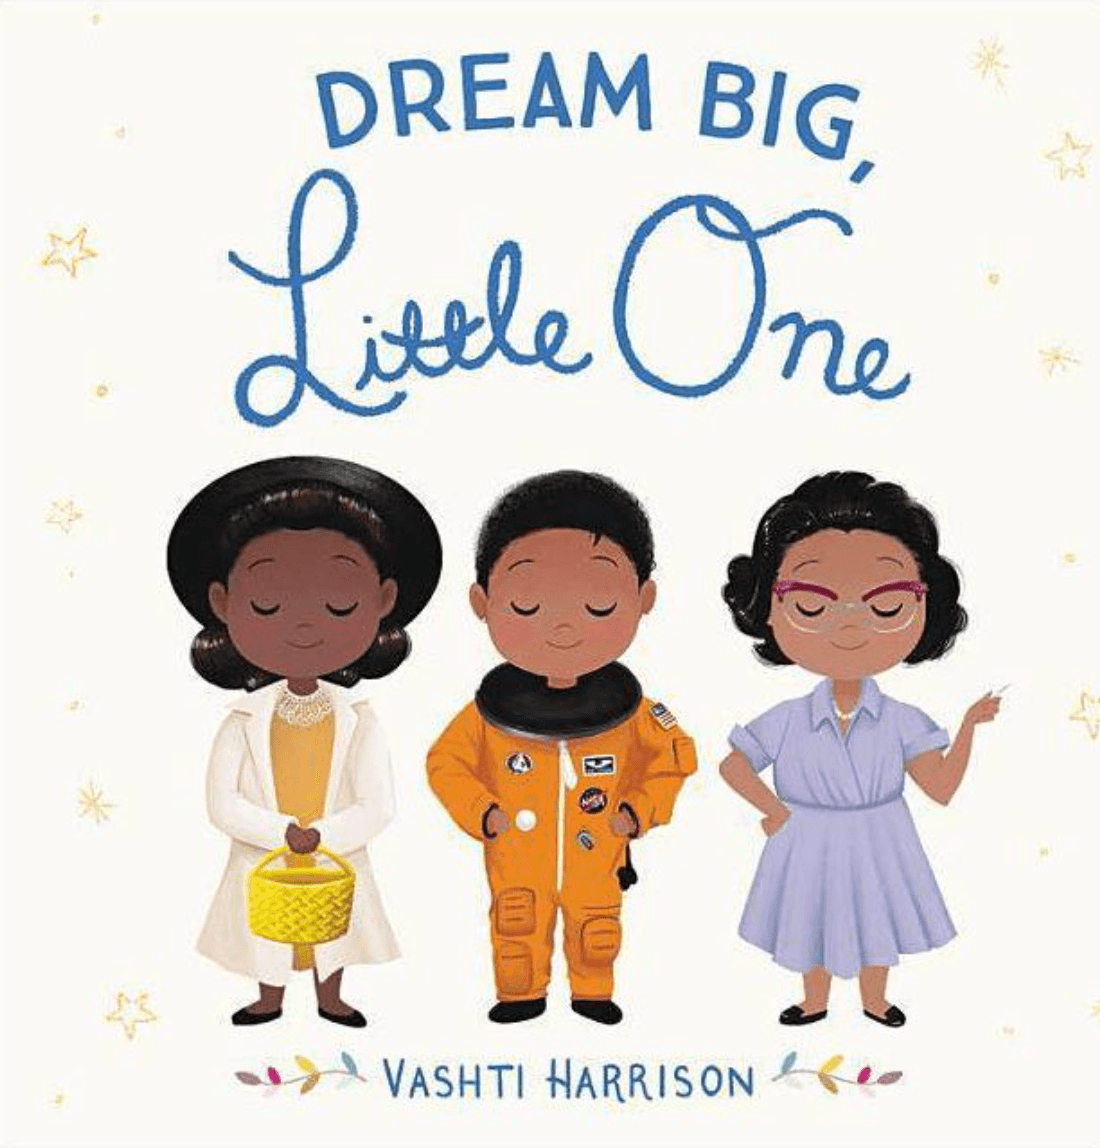 15 Children's Books to Support Conversations on Race and Diversity